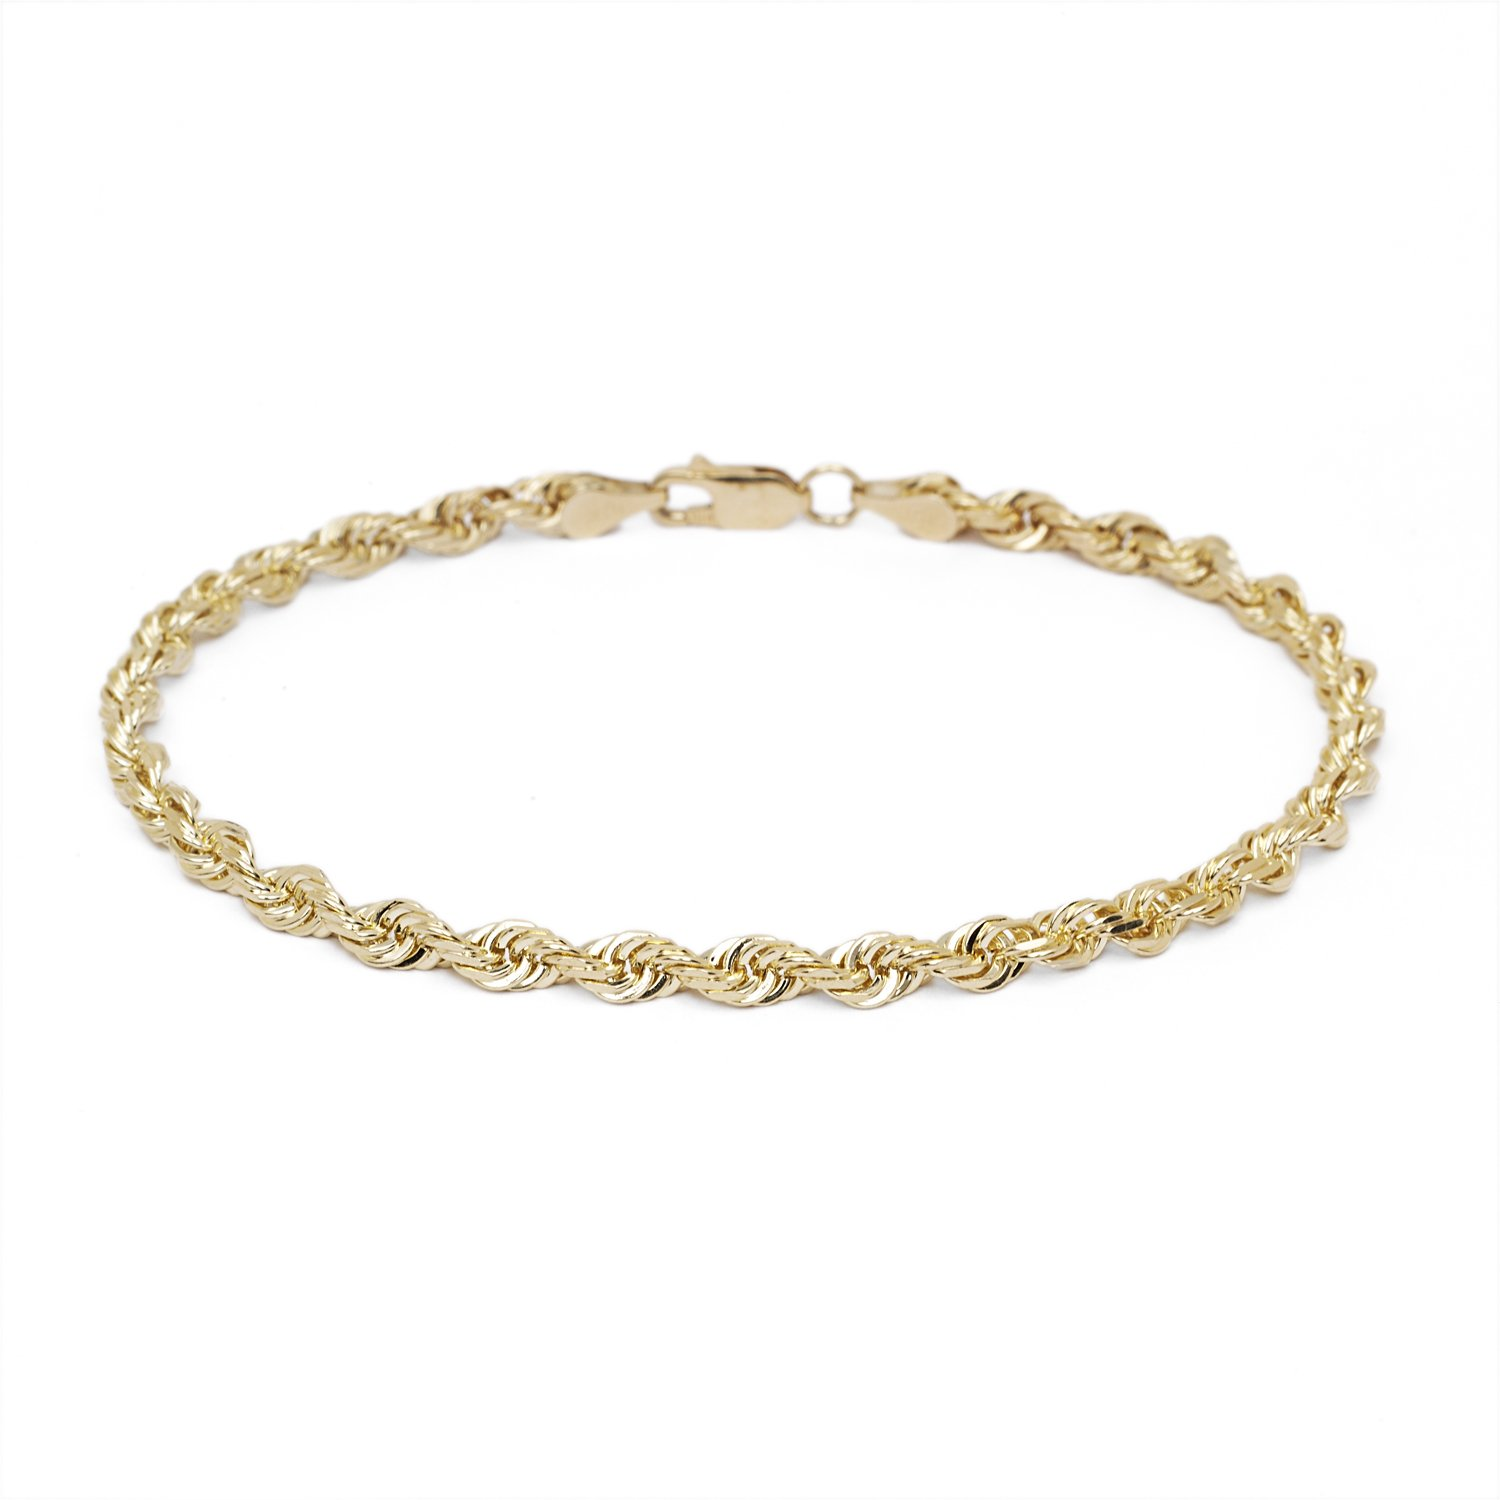 8 Inch 10k Yellow Gold Diamond Cut Hollow Rope Chain Bracelet and Anklet for Men & Women, 3mm